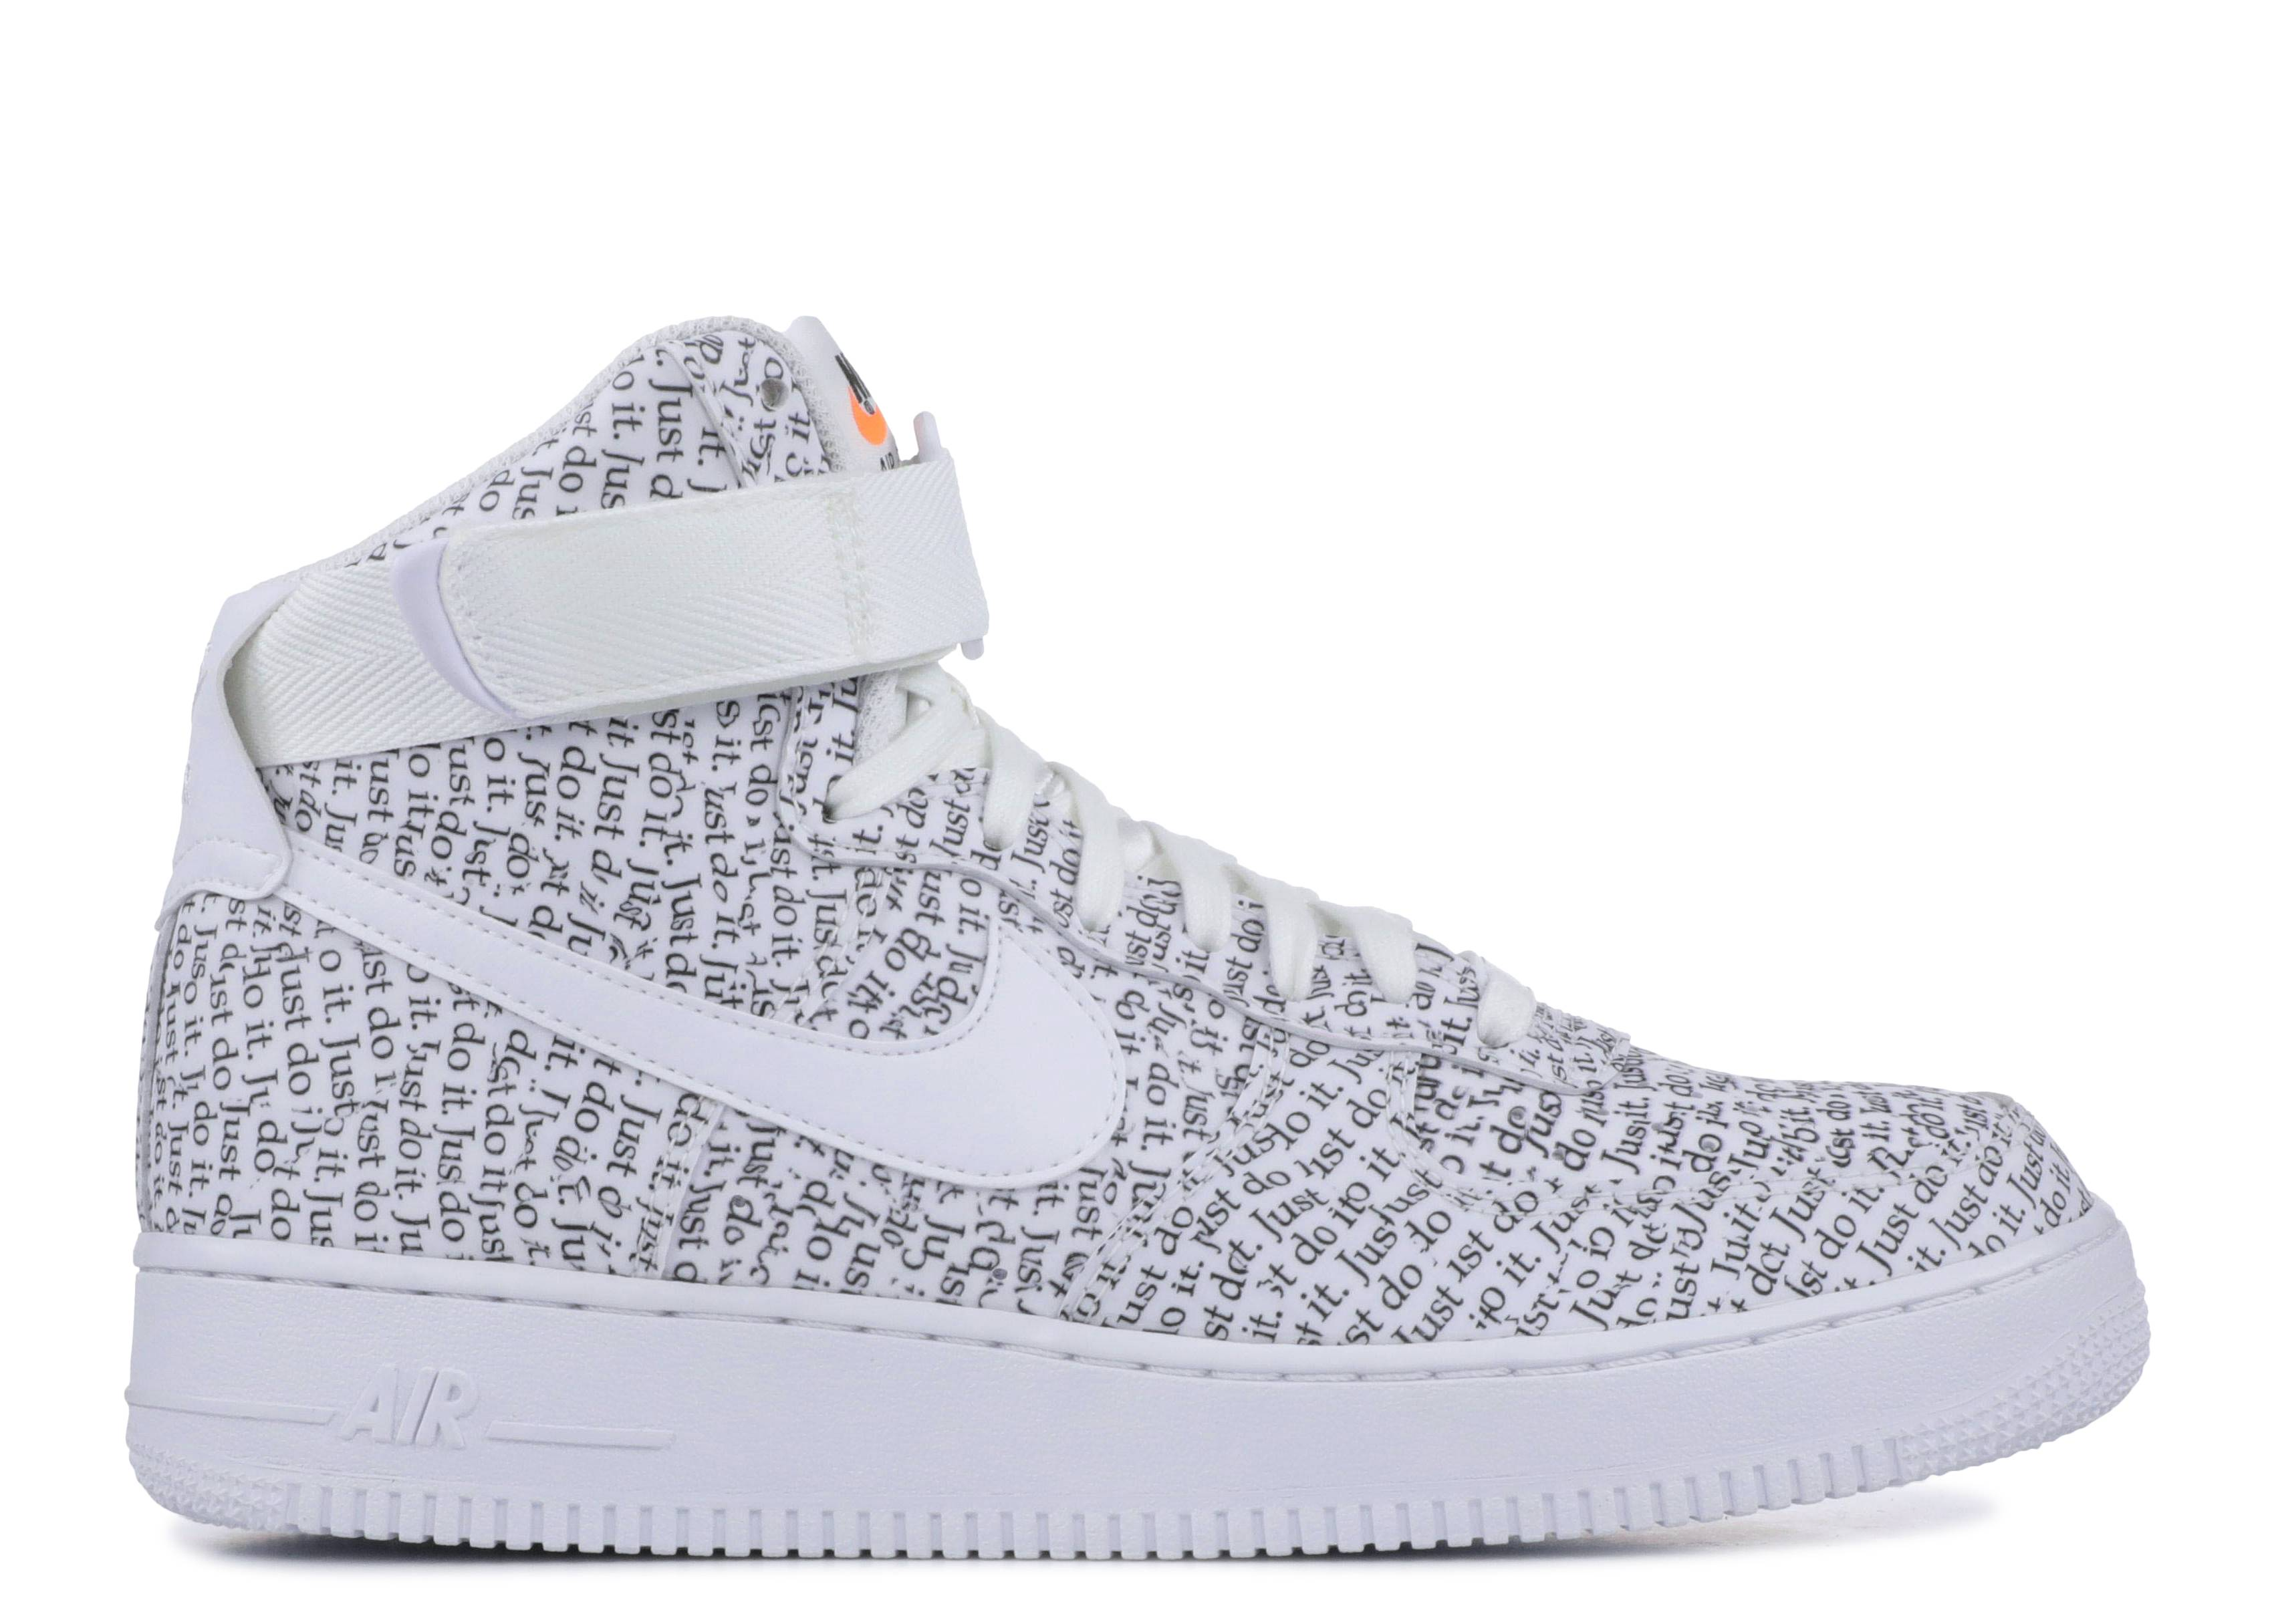 competitive price 07a54 25b7a Air Force 1 Hi 07 Lv8 Jdi